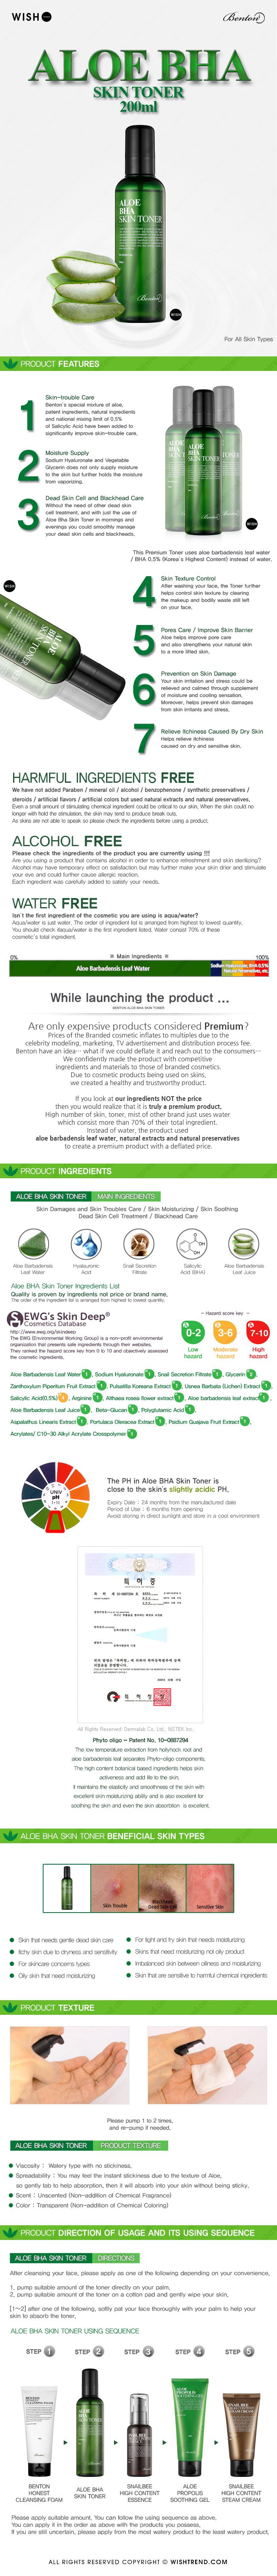 [BENTON] Aloe Bha Skin Toner    0.5% of salicylic acid have been added to significantly     improve skin-trouble care. http://www.wartalooza.com/treatments/over-the-counter-wart-removers